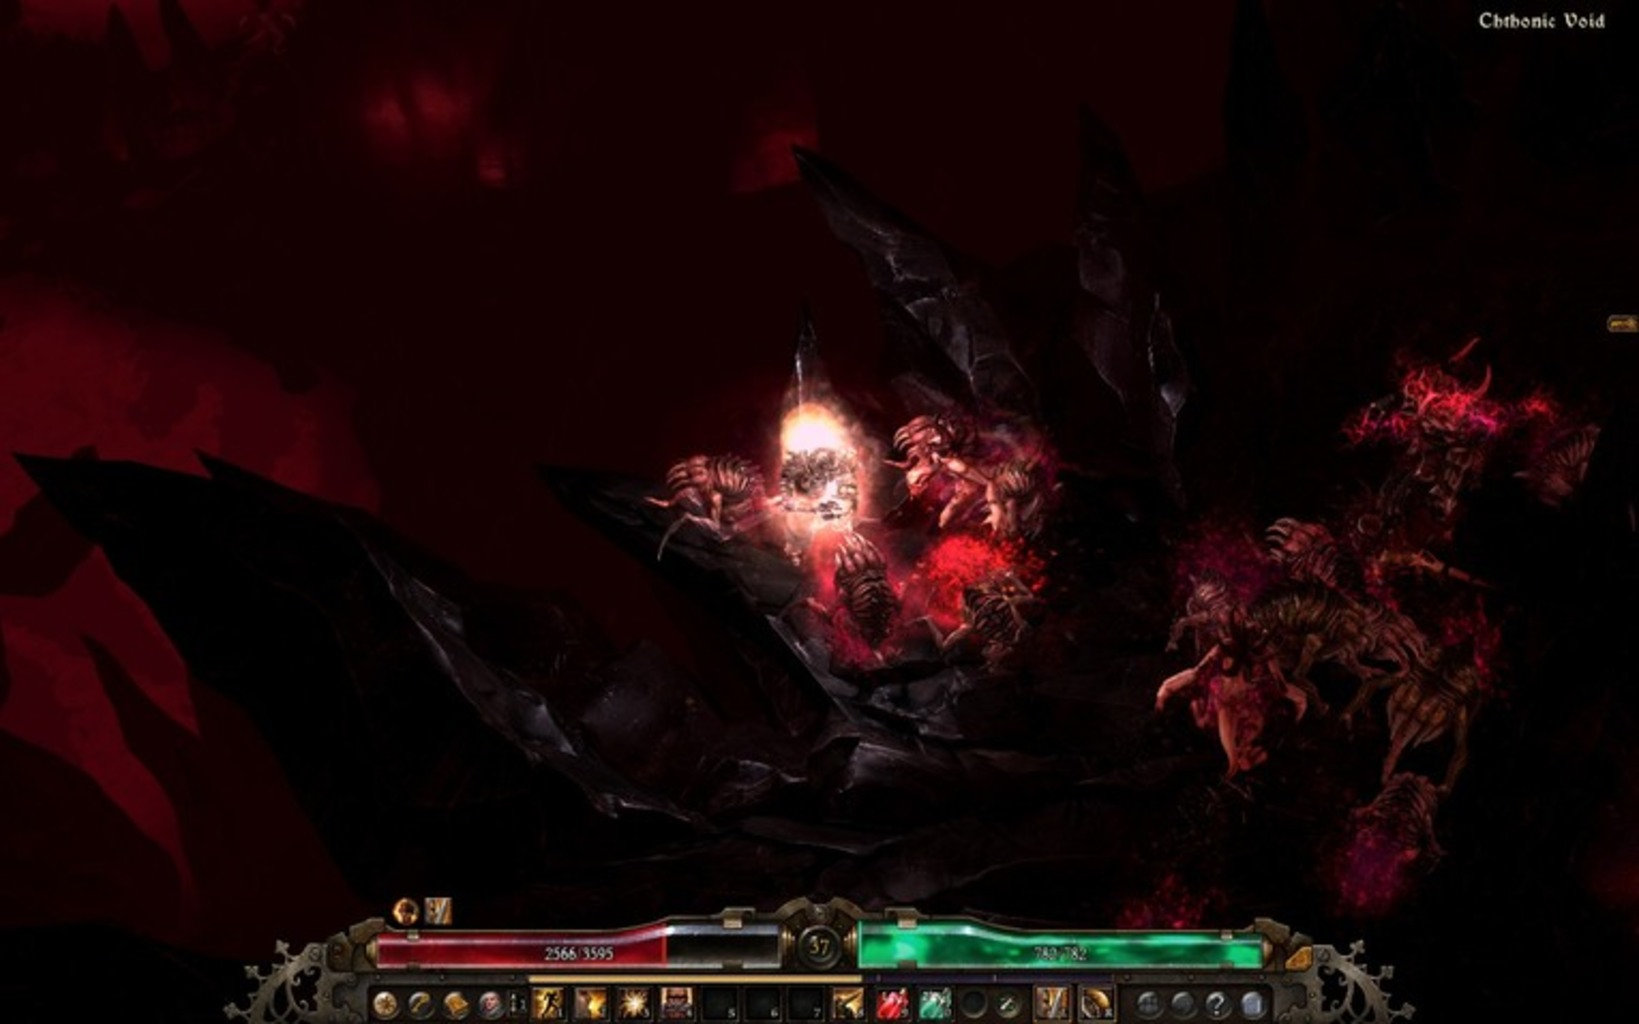 Grim Dawn's main focus is single-player action, though it supports multiplayer for up to four people.